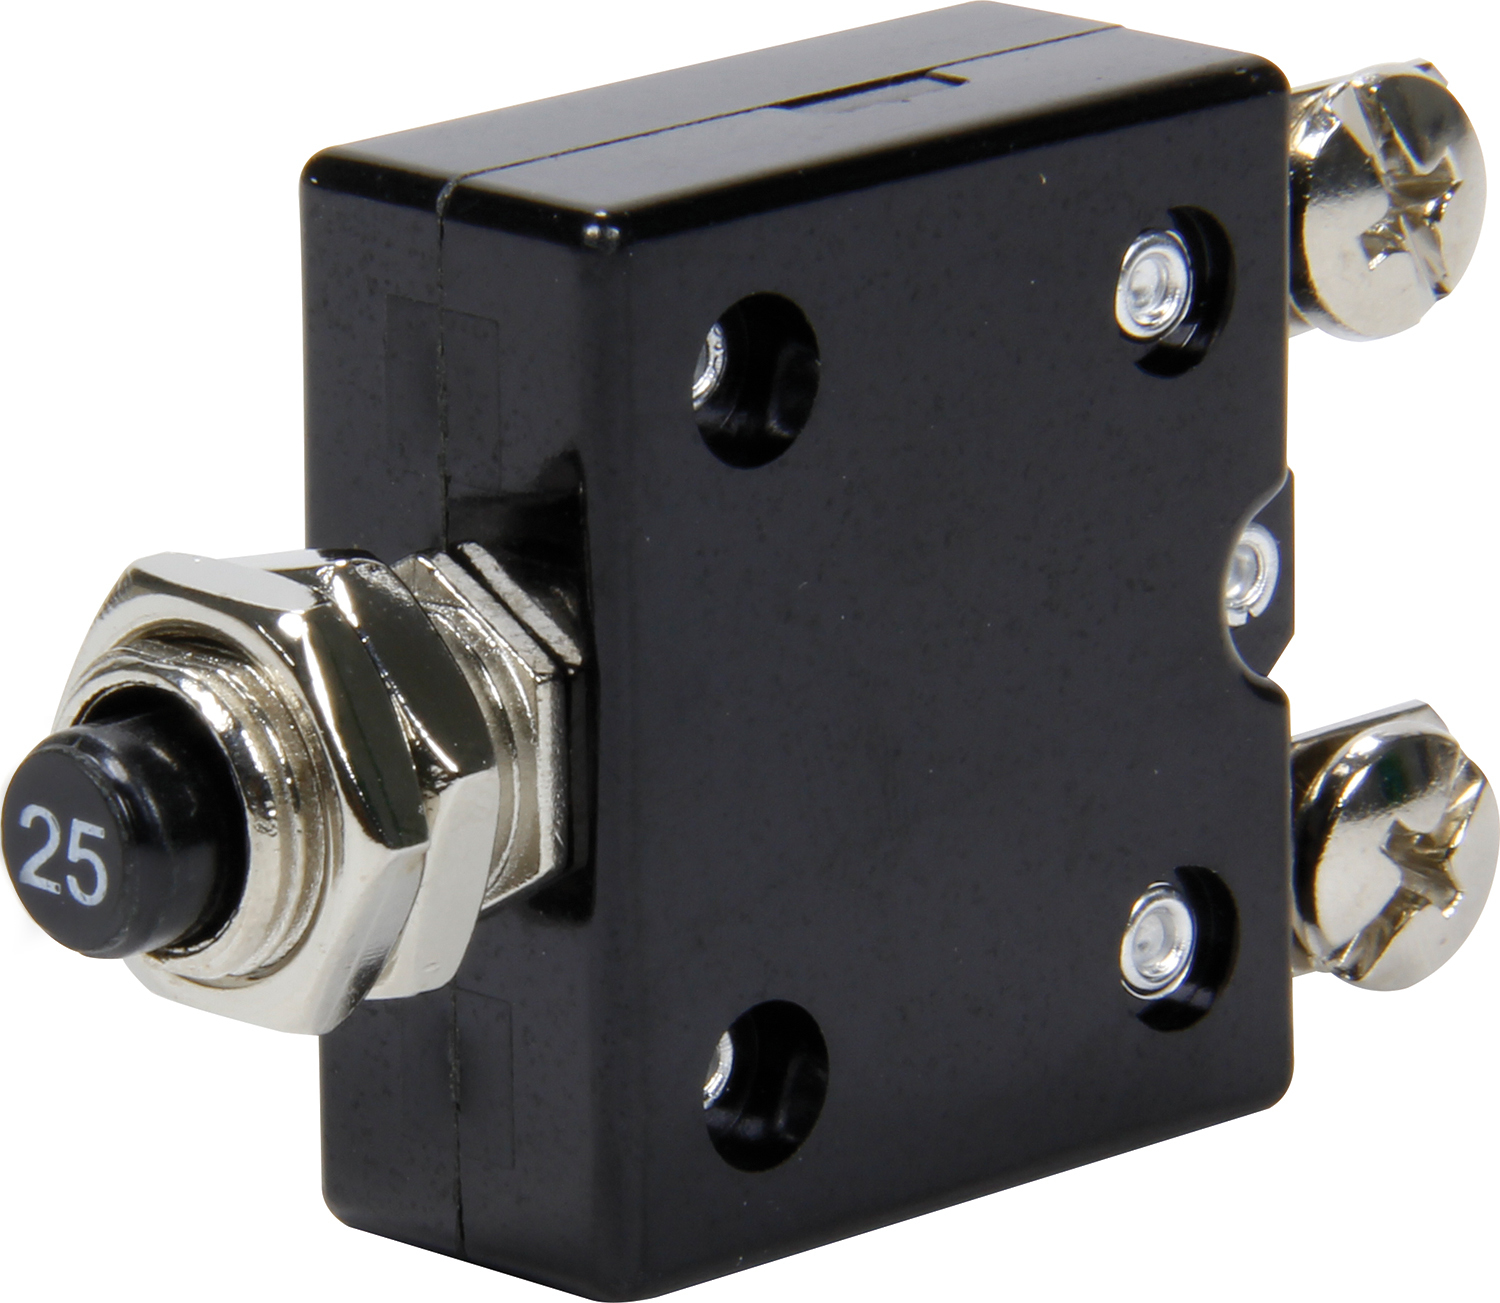 Quickcar Racing Products 25 Amp Resettable Circuit Breaker